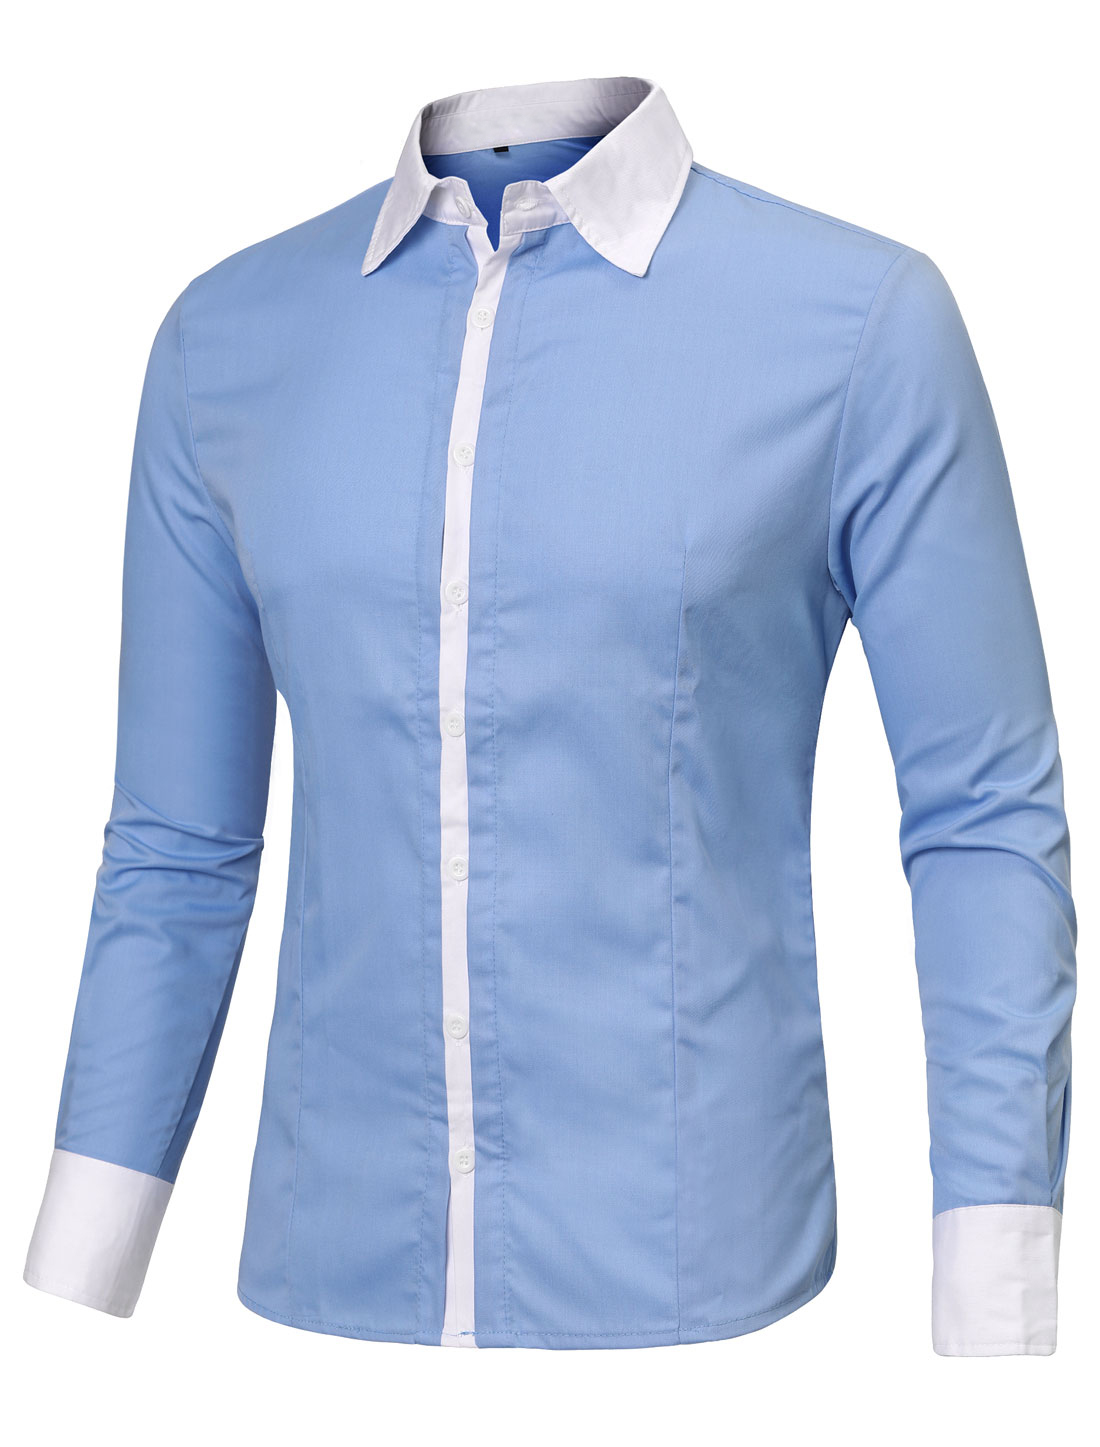 Men Buttons Up Closure Button Cuffs Fashion Top Shirt Sky Blue L